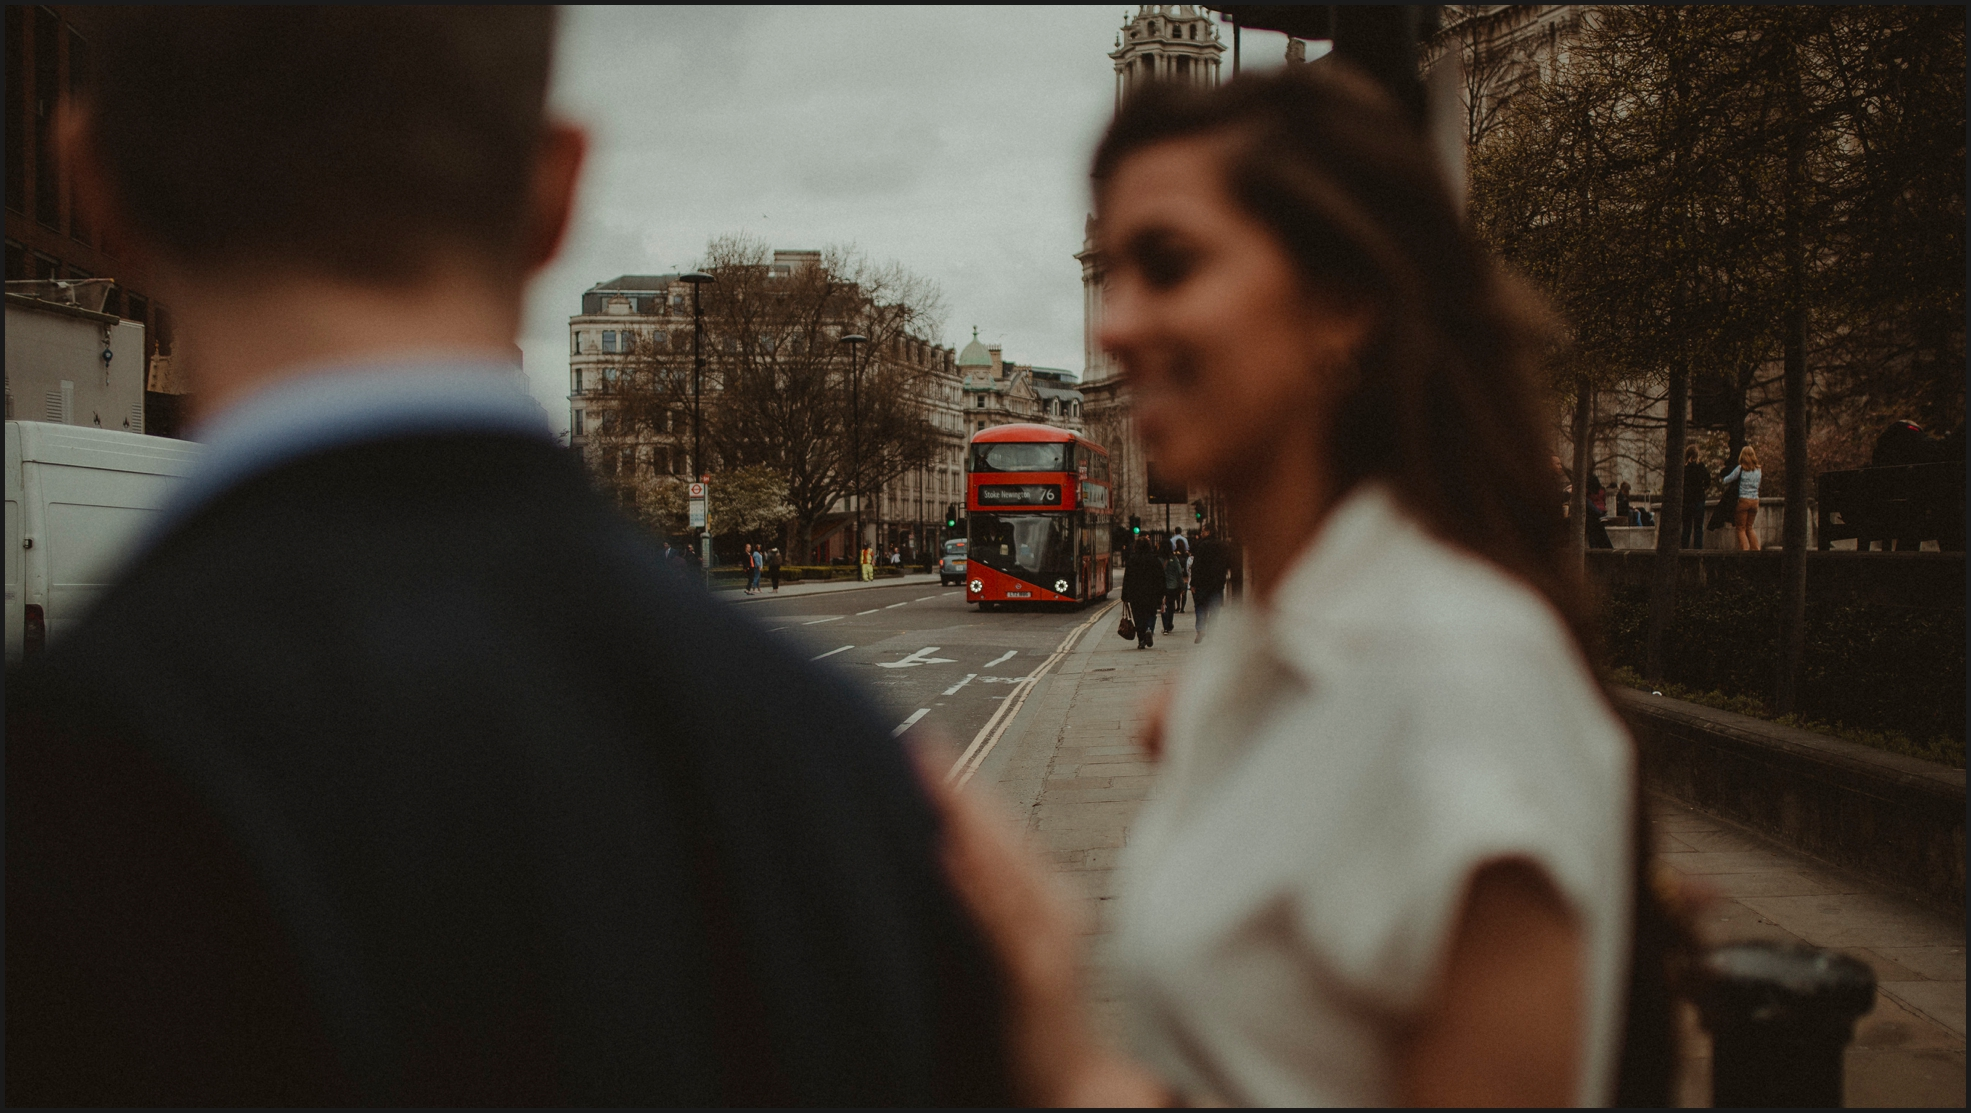 london, engagement photosession